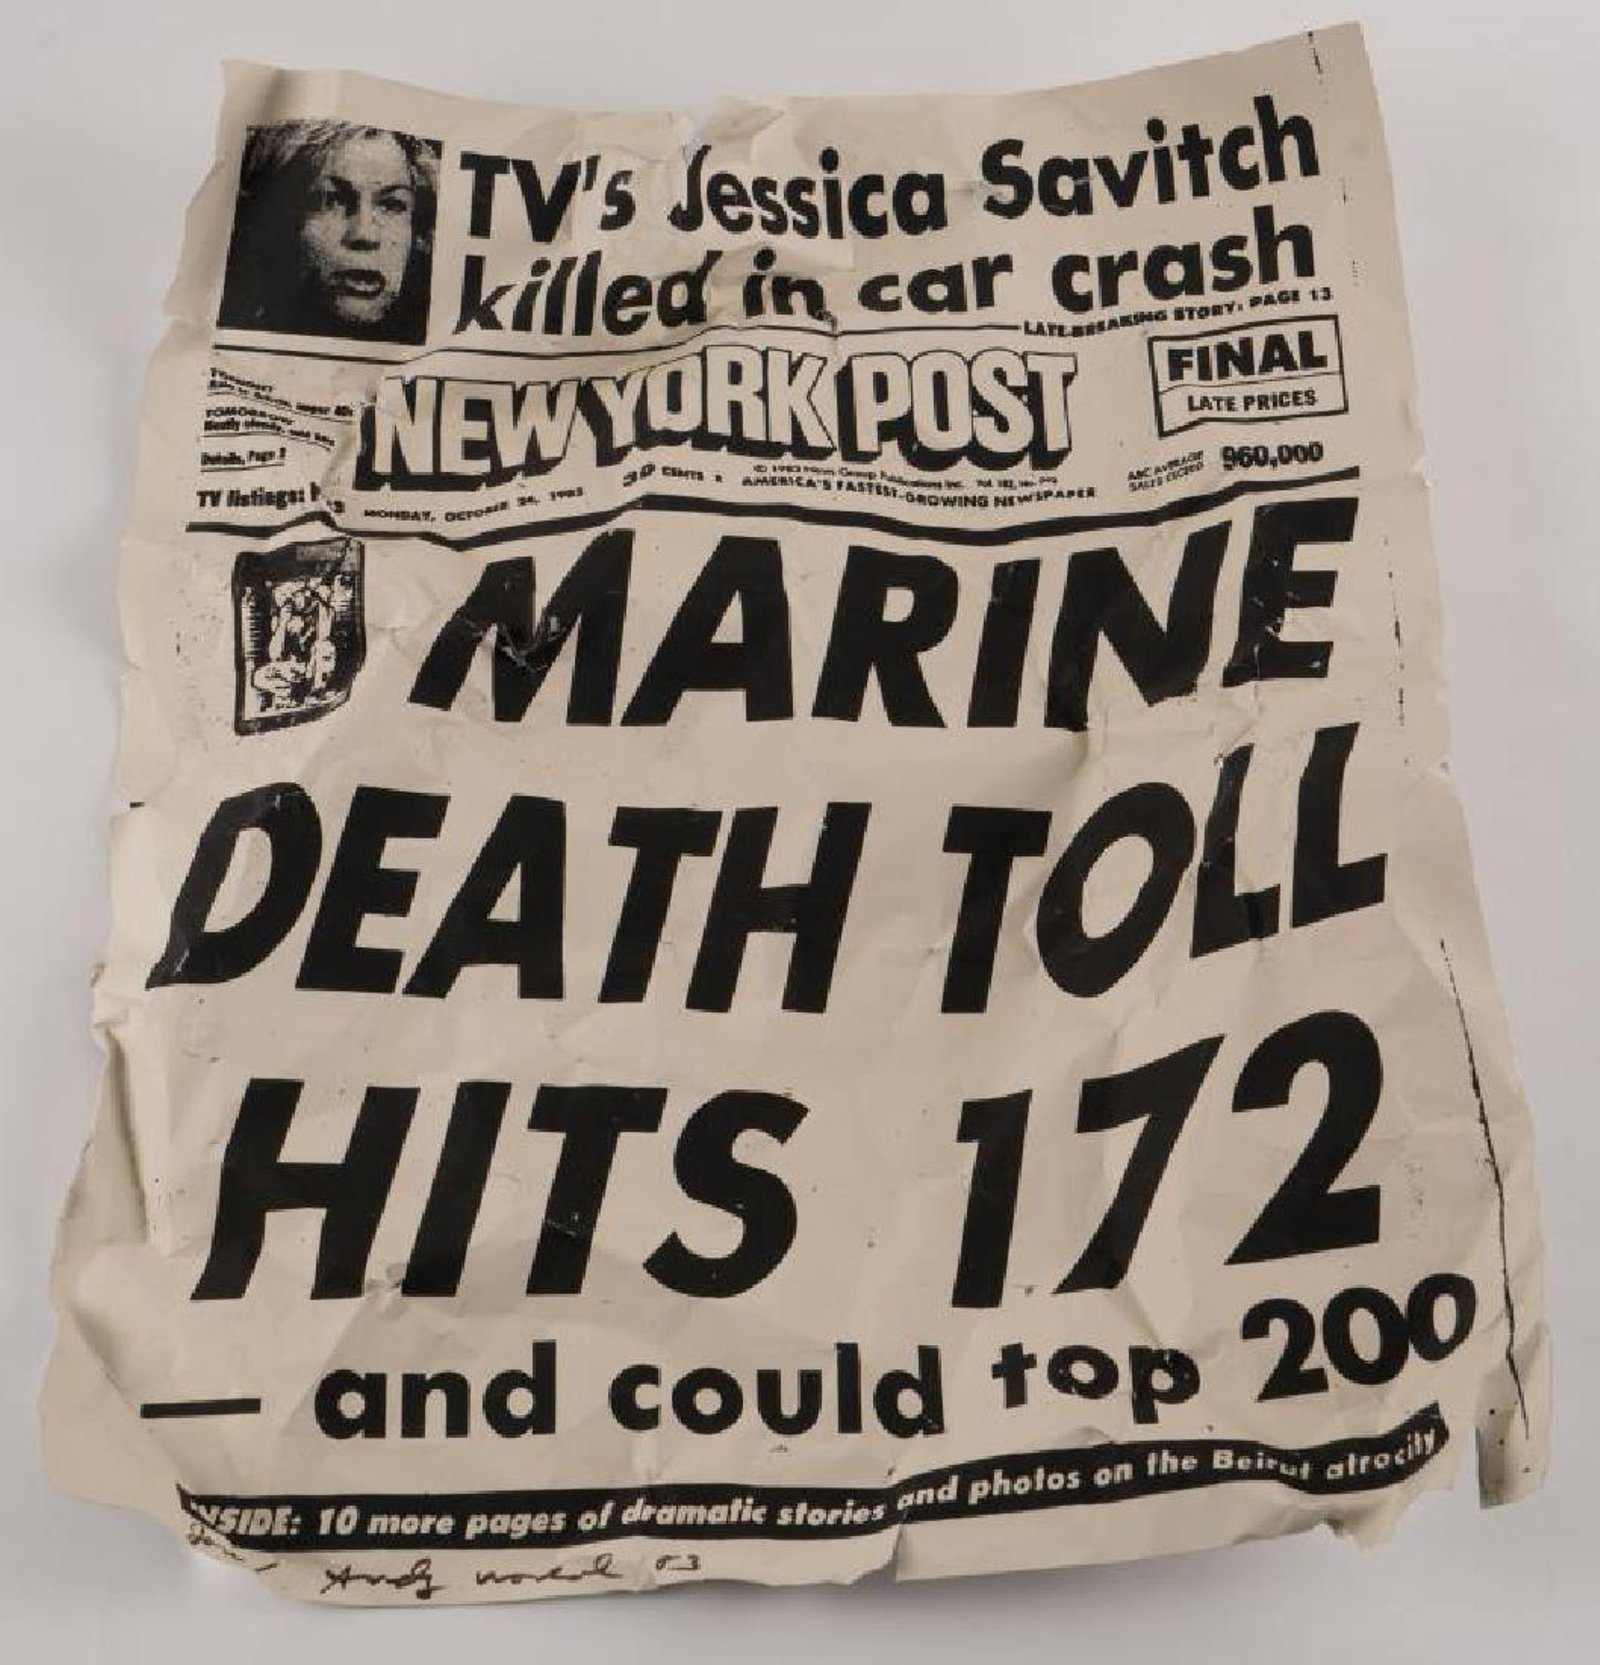 Andy Warhol, New York Post Marine Death Toll Hits 172, synthetic polymer and silkscreen ink on aluminum sheeting. 2 x 24 x 20 inches (approximately). signed Jon/ Andy Warhol '83